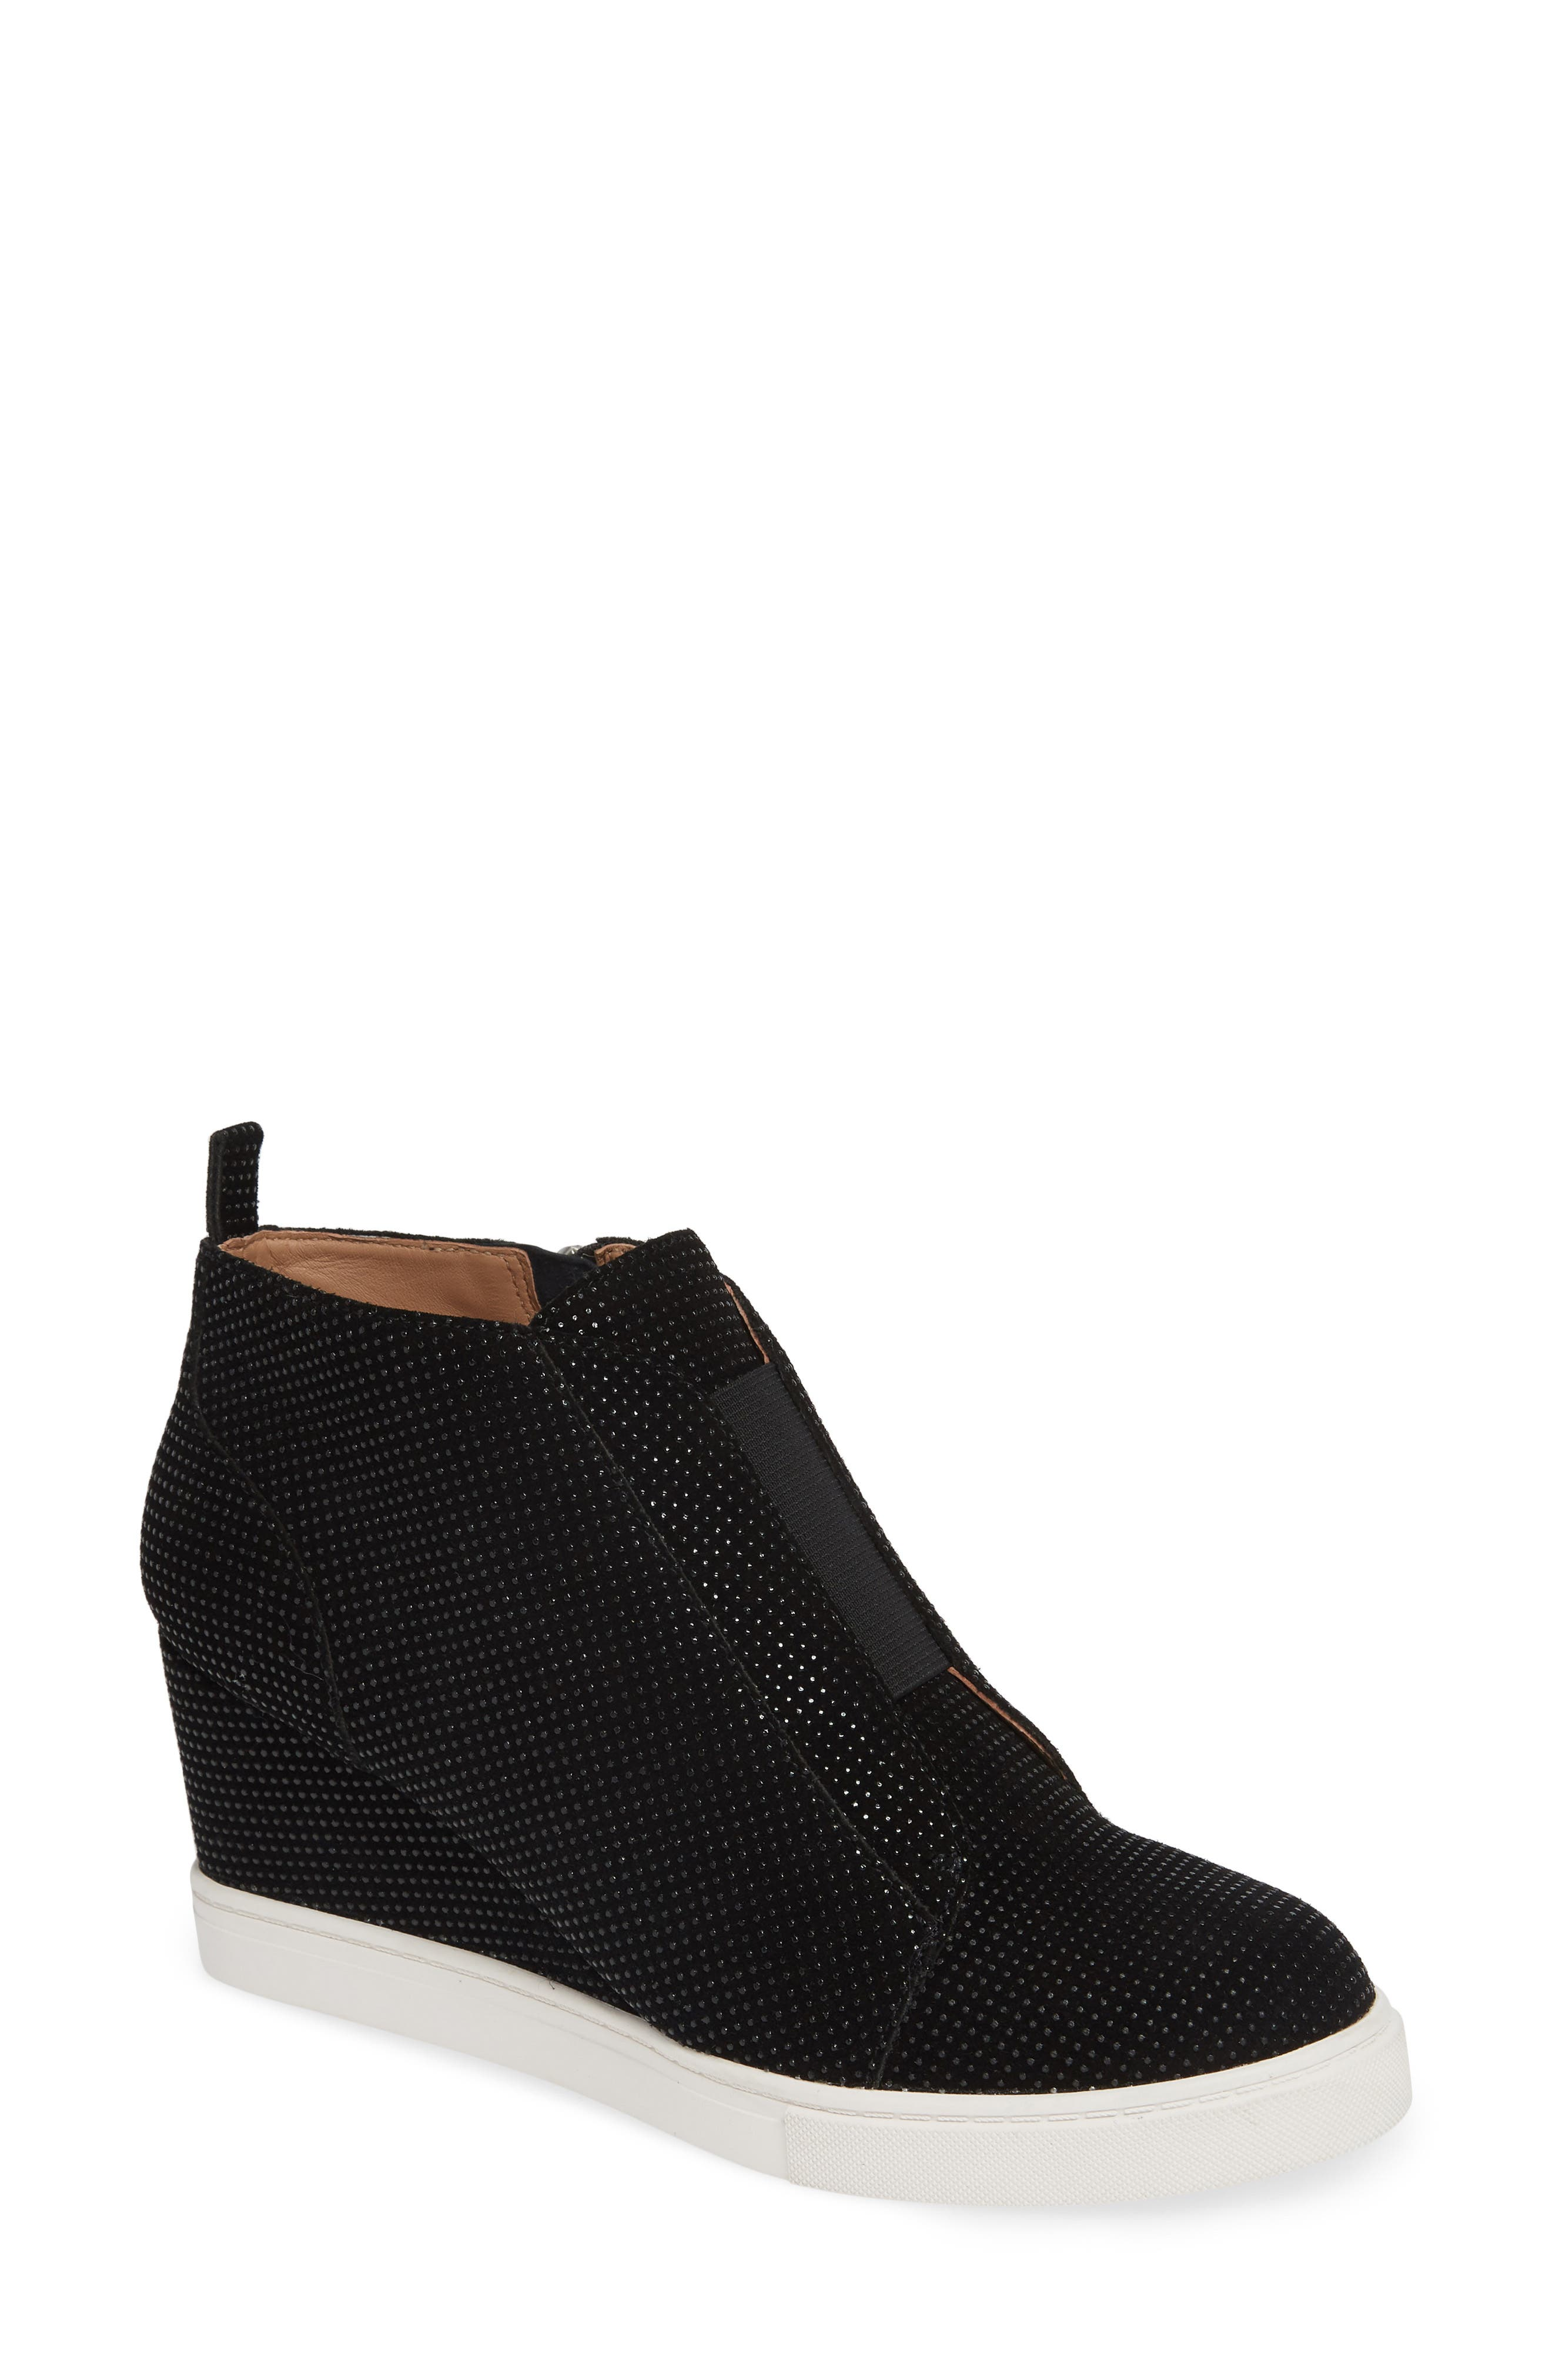 'Felicia' Wedge Bootie,                         Main,                         color, BLACK TEXTURED SUEDE